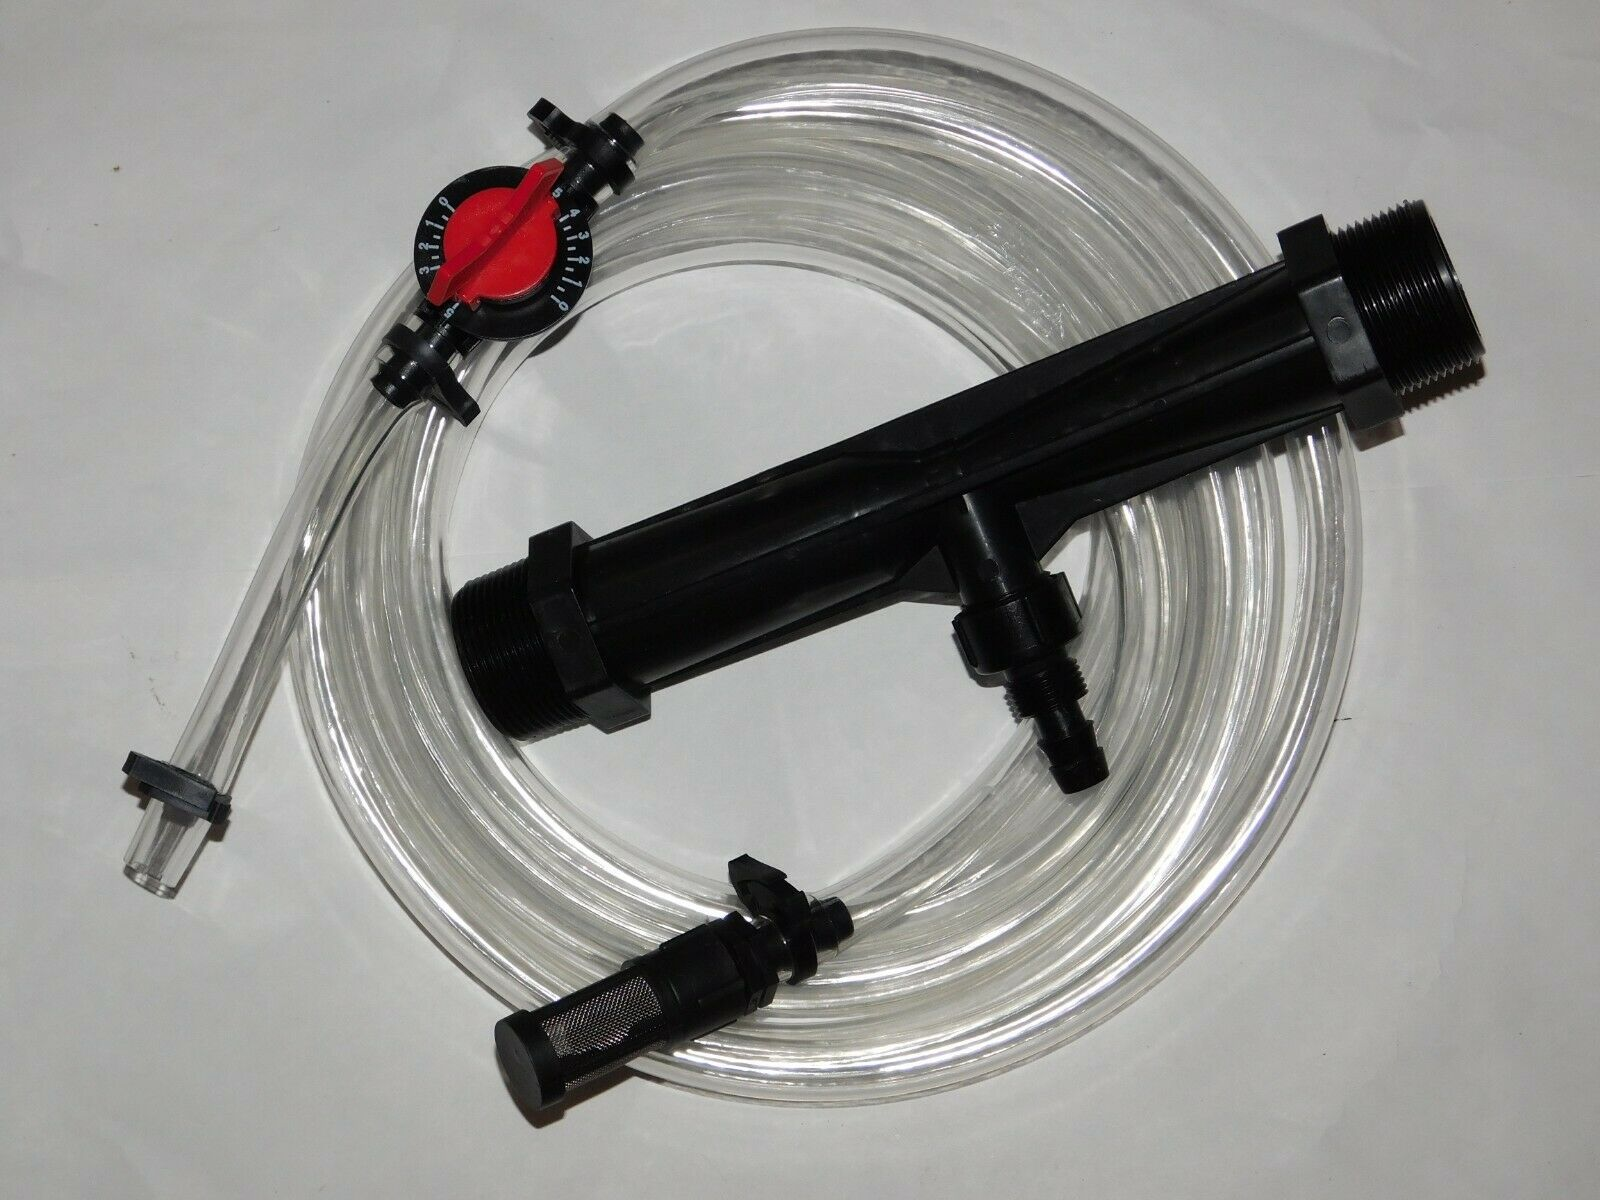 1.5 Fertilizer injector for drip irrigation systems, 1 1 2 Inlet outlet thread.